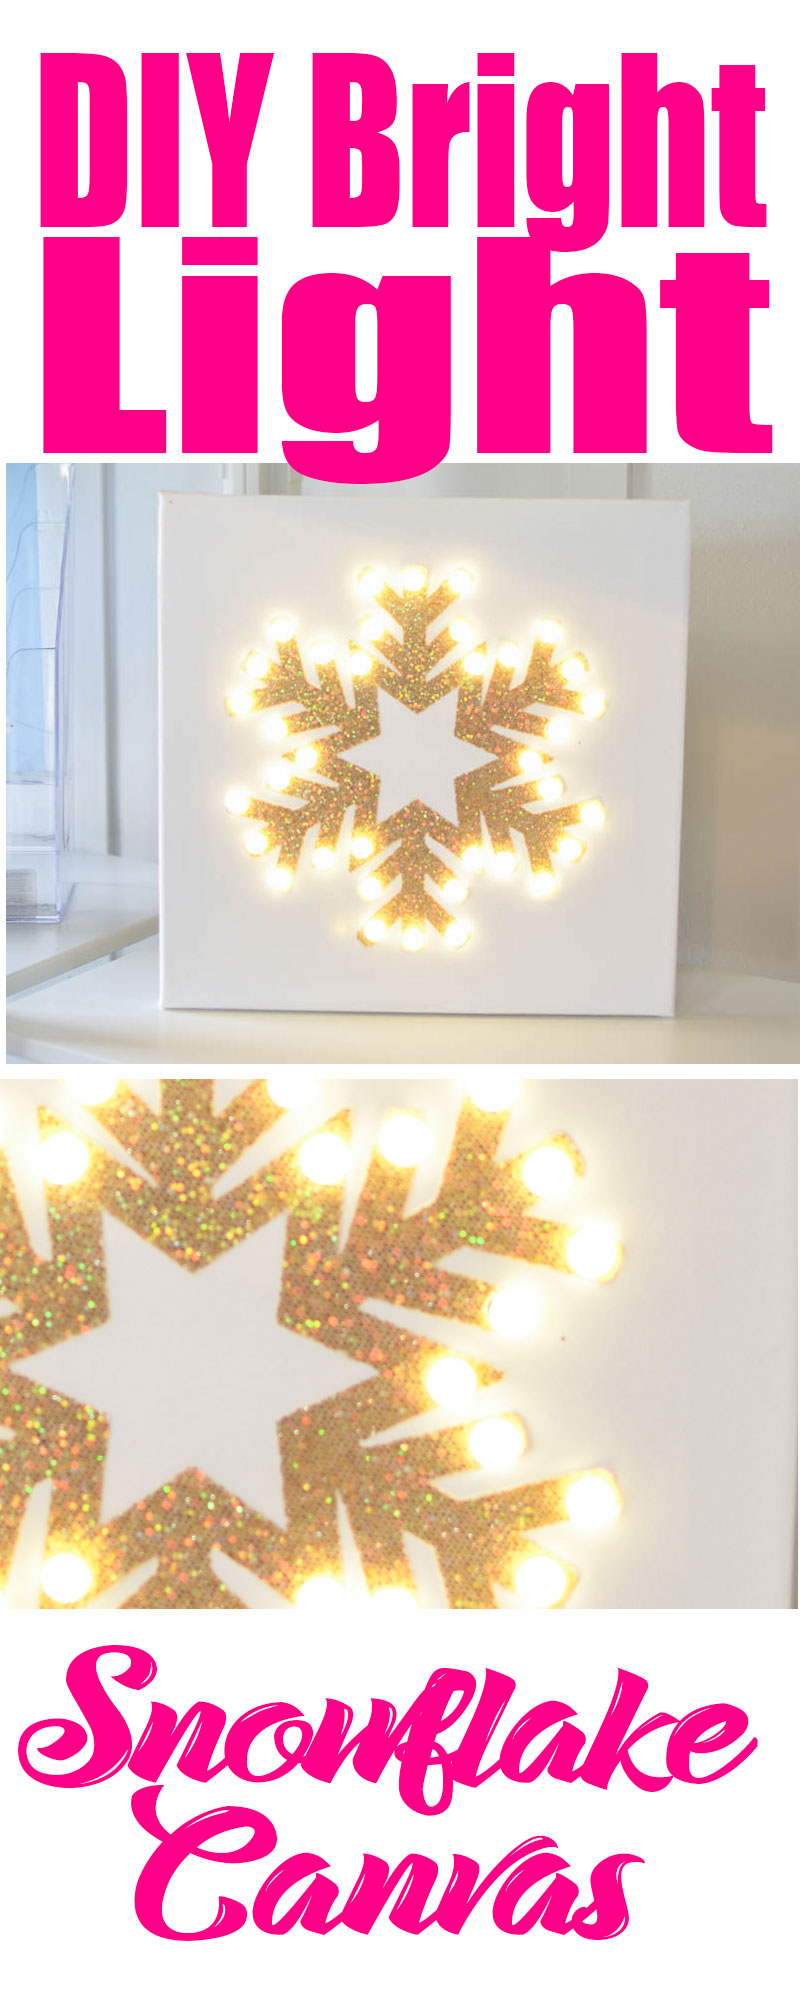 DIY Bright Light Snowflake Canvas: Make this simple lighted canvas for practically nothing! #budgetchristmasdecor #decoratingonabudget #christams #christmascrafts #snowflake #diy